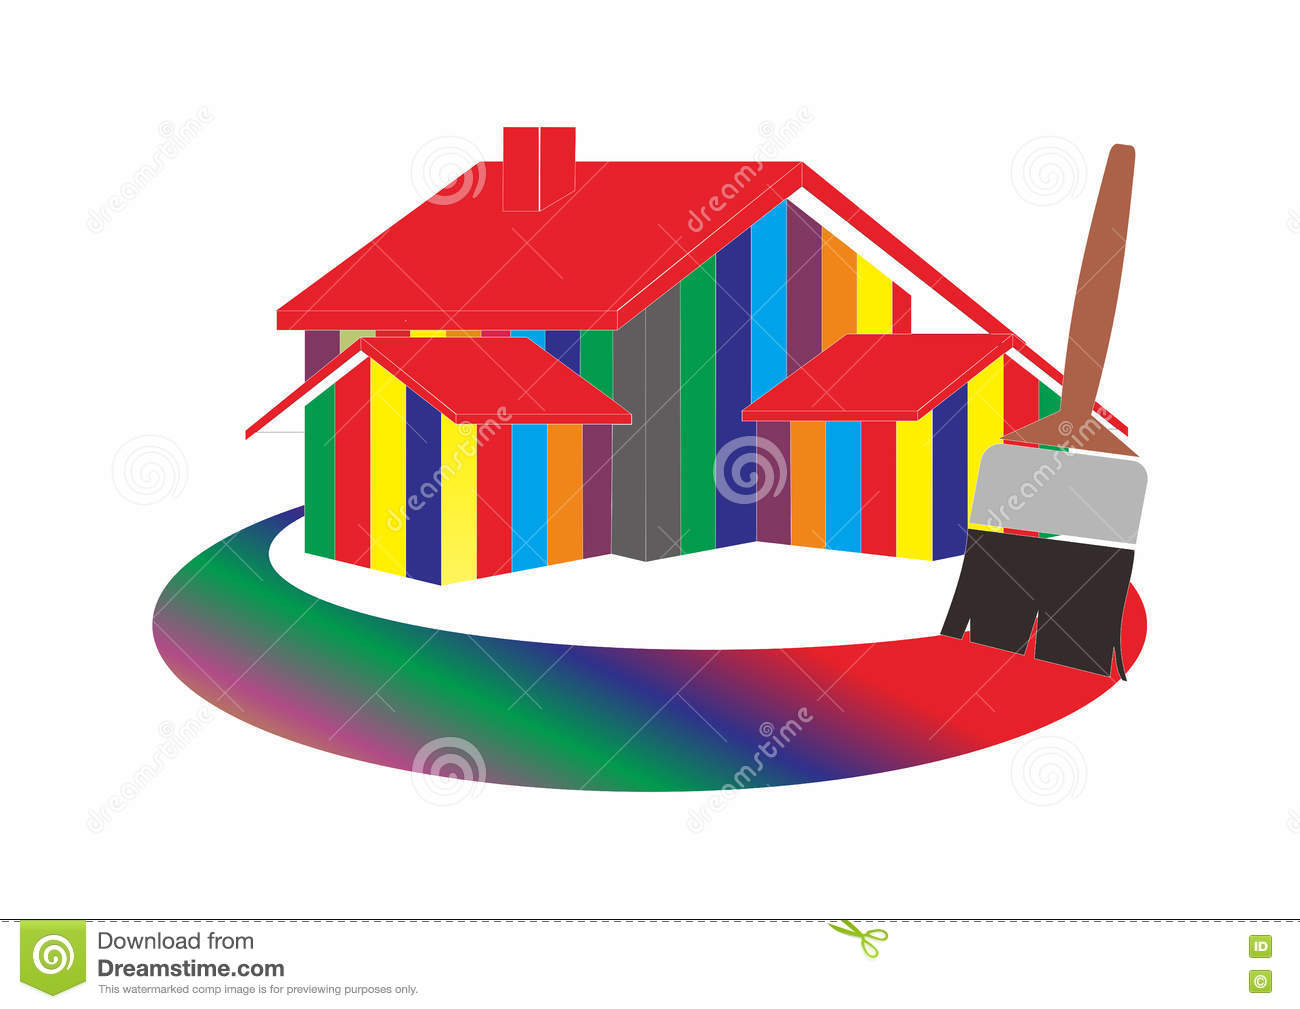 House Painting New House Painting Logo Royalty Free Stock Photography  Image 17320967 Review